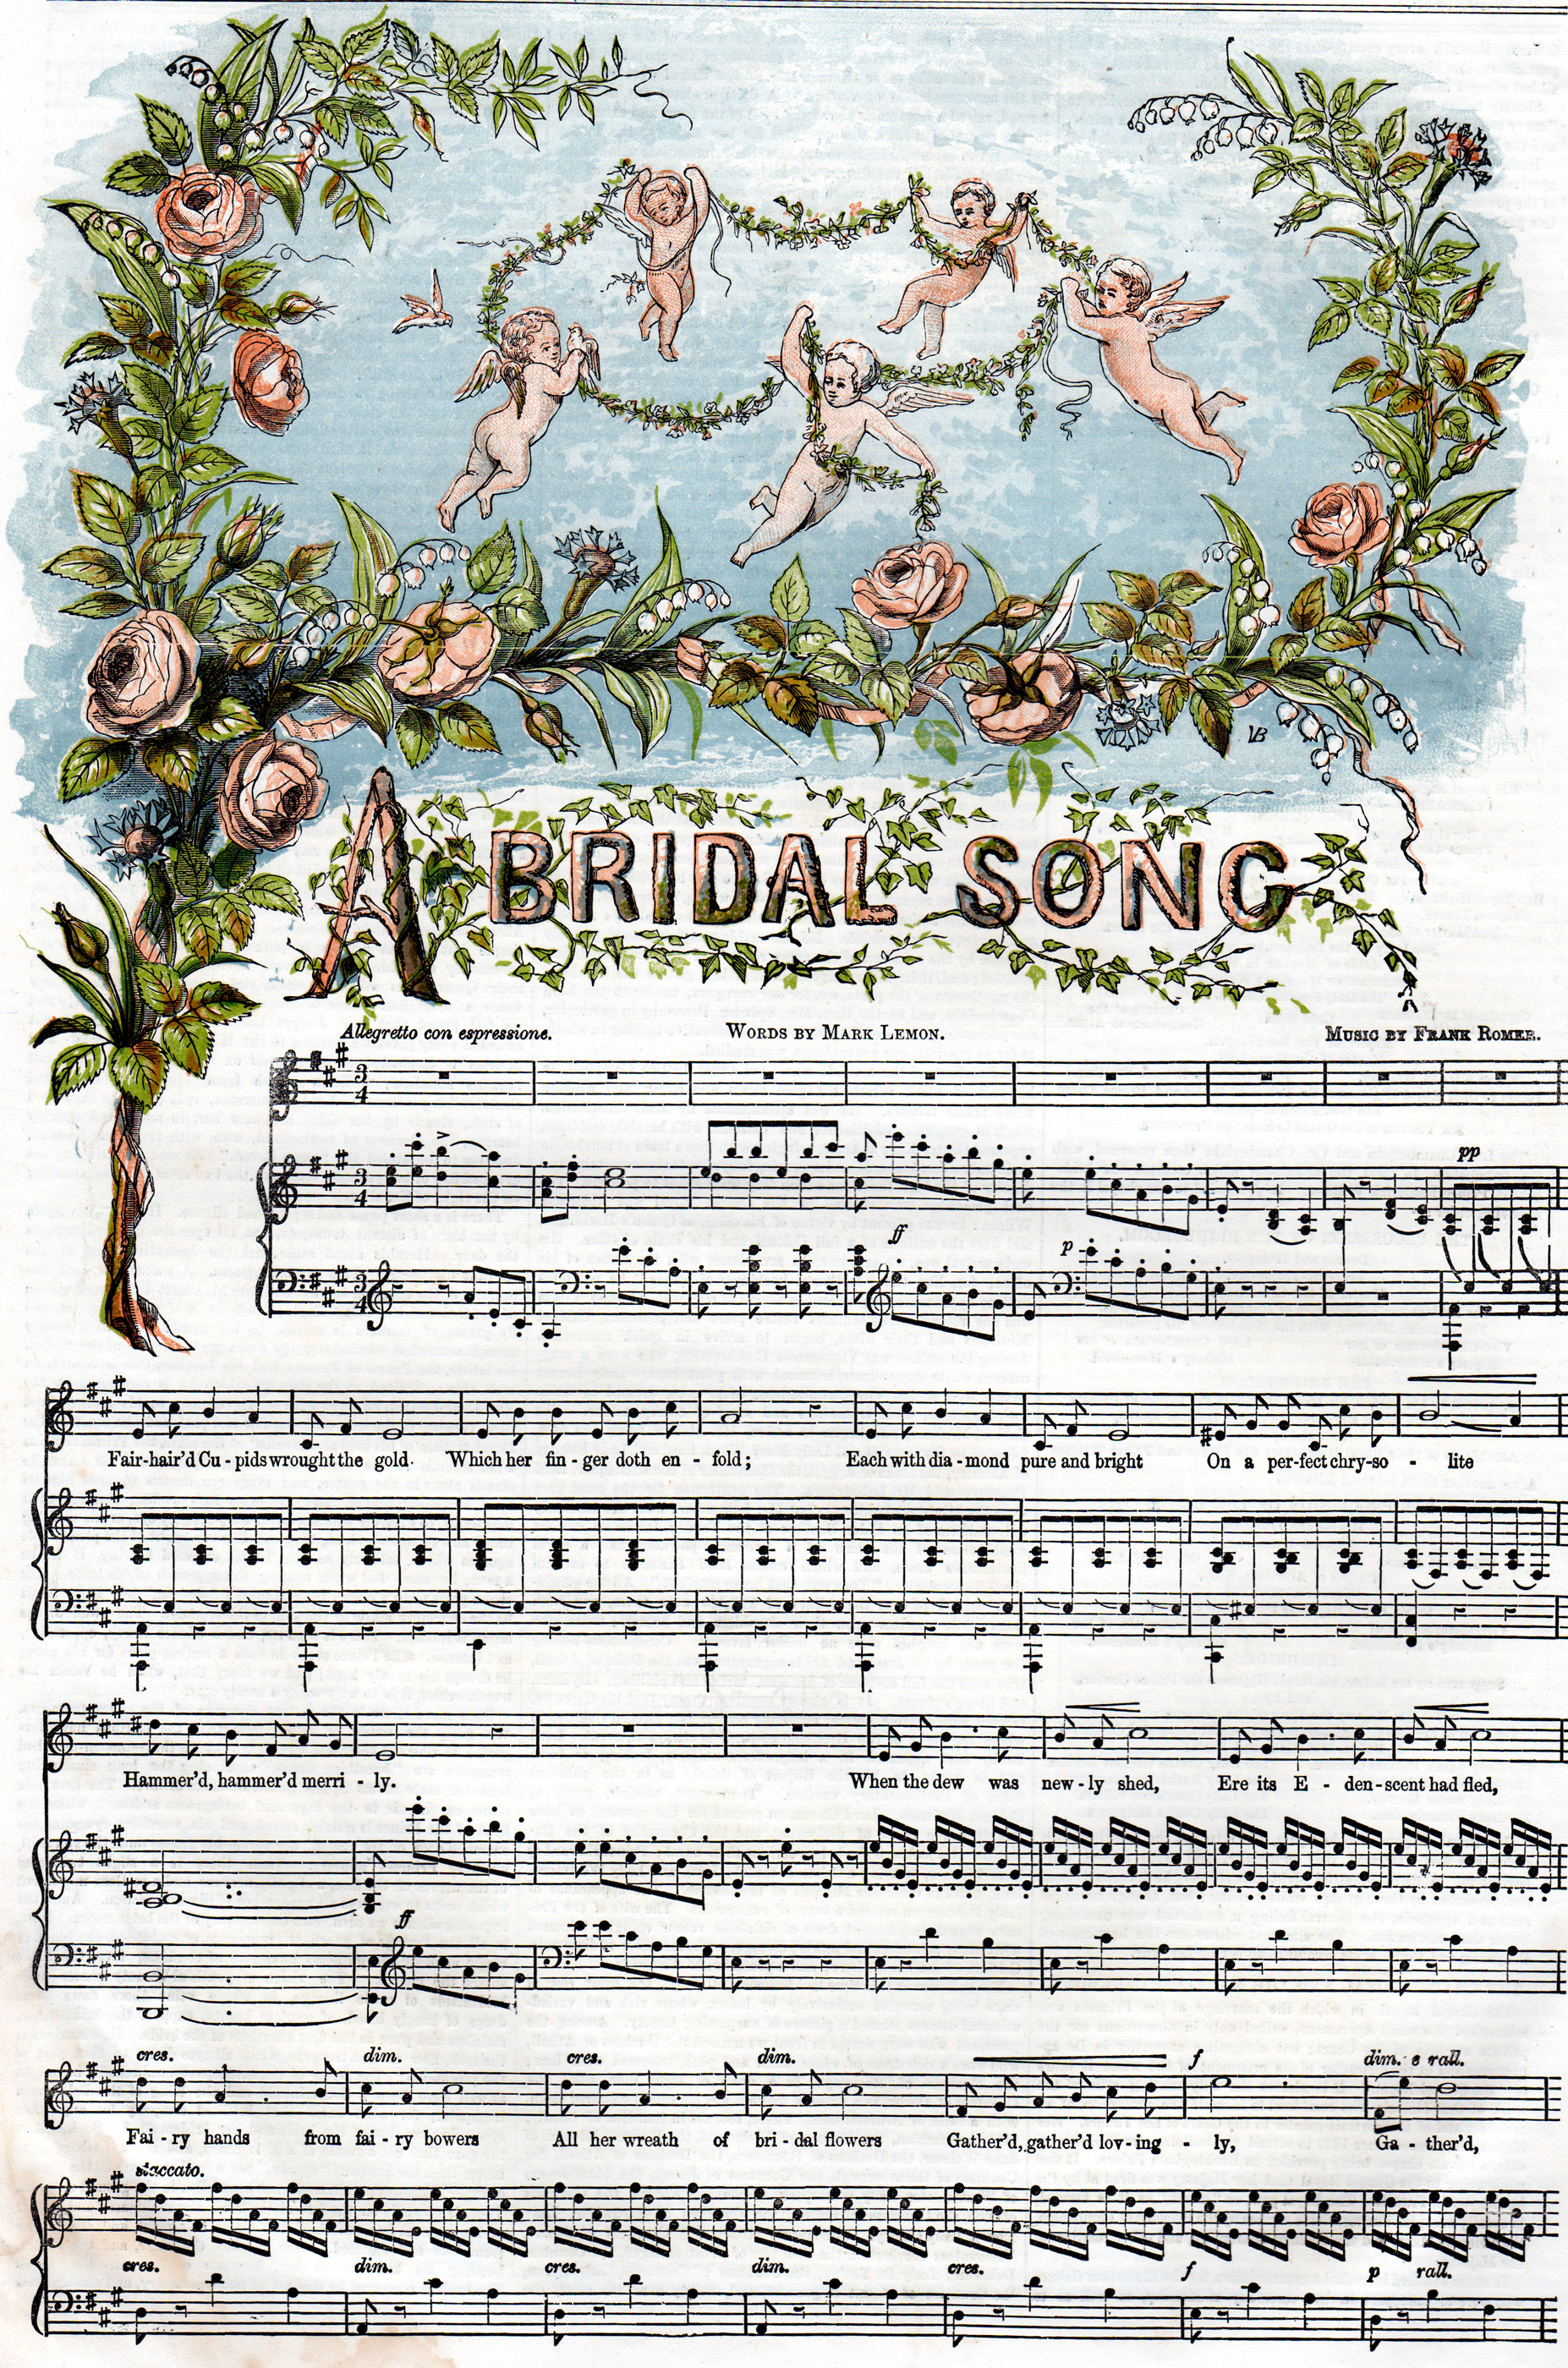 Antique sheet music woodcuts from The Illustrated London News, The Graphic and other 19th-century sources